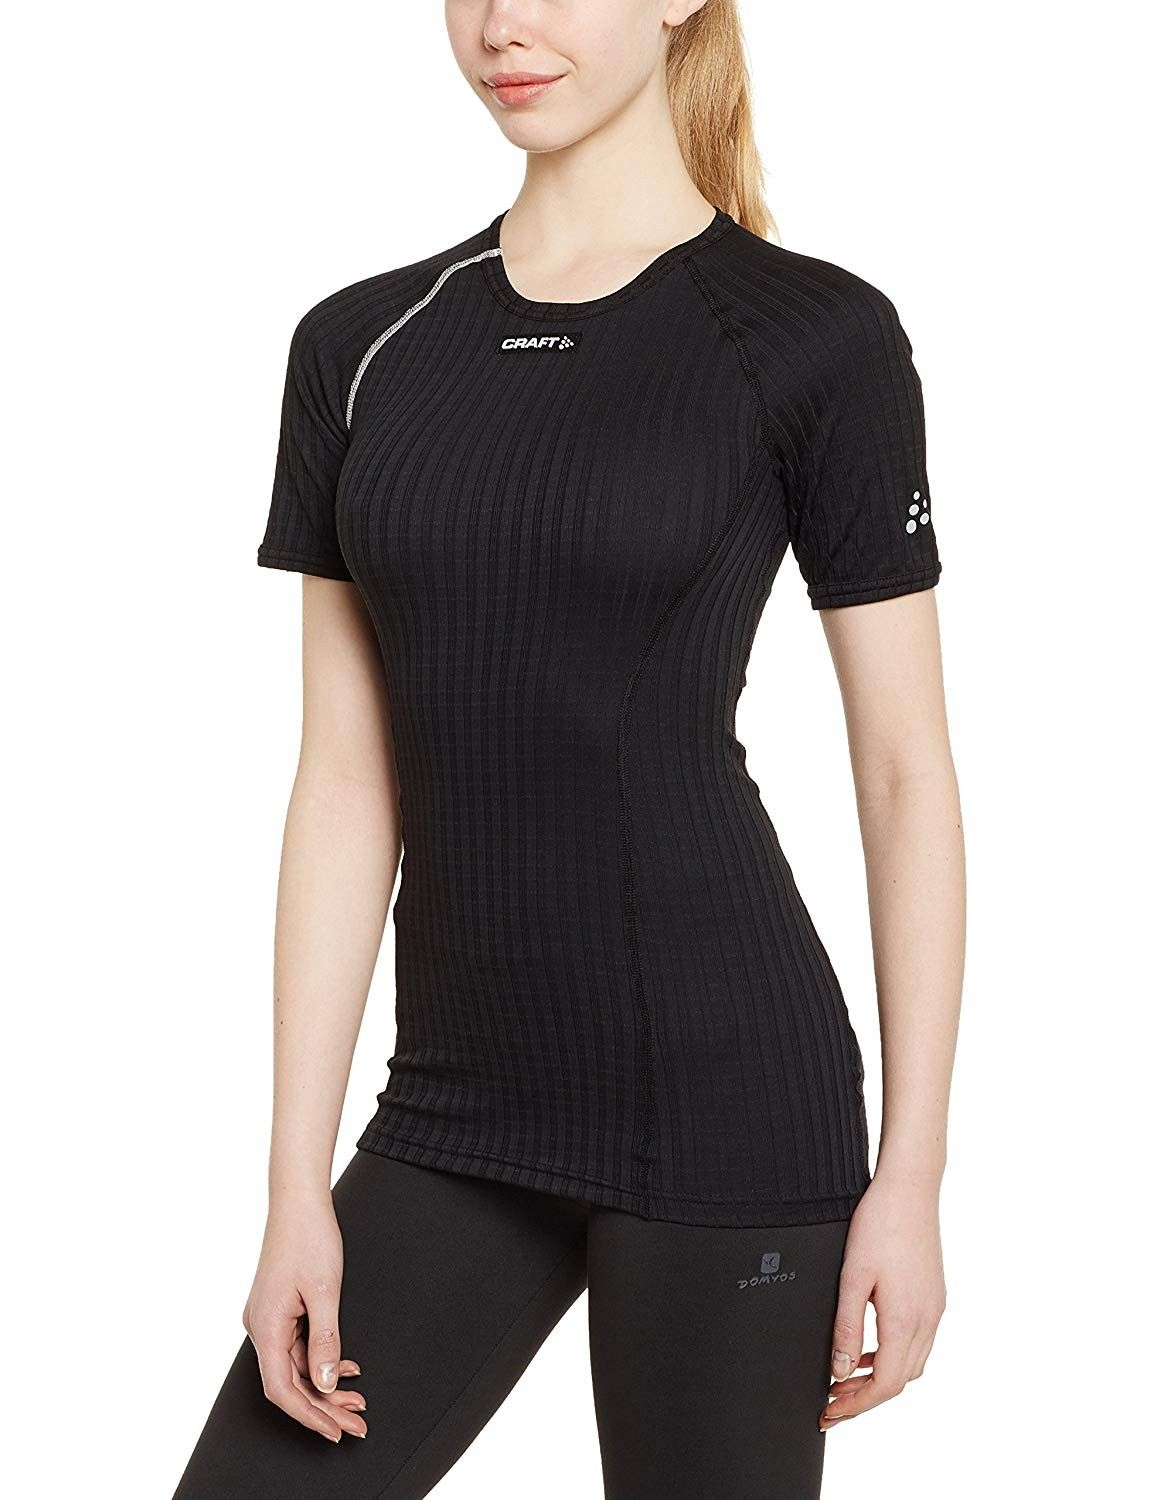 Women's Active Extreme Short Sleeve Base Layer Wicking Shirt -  Black/Platinum - CV11SO86S9J Size X-Small | Wicking shirt, Stylish clothes  for women, Women